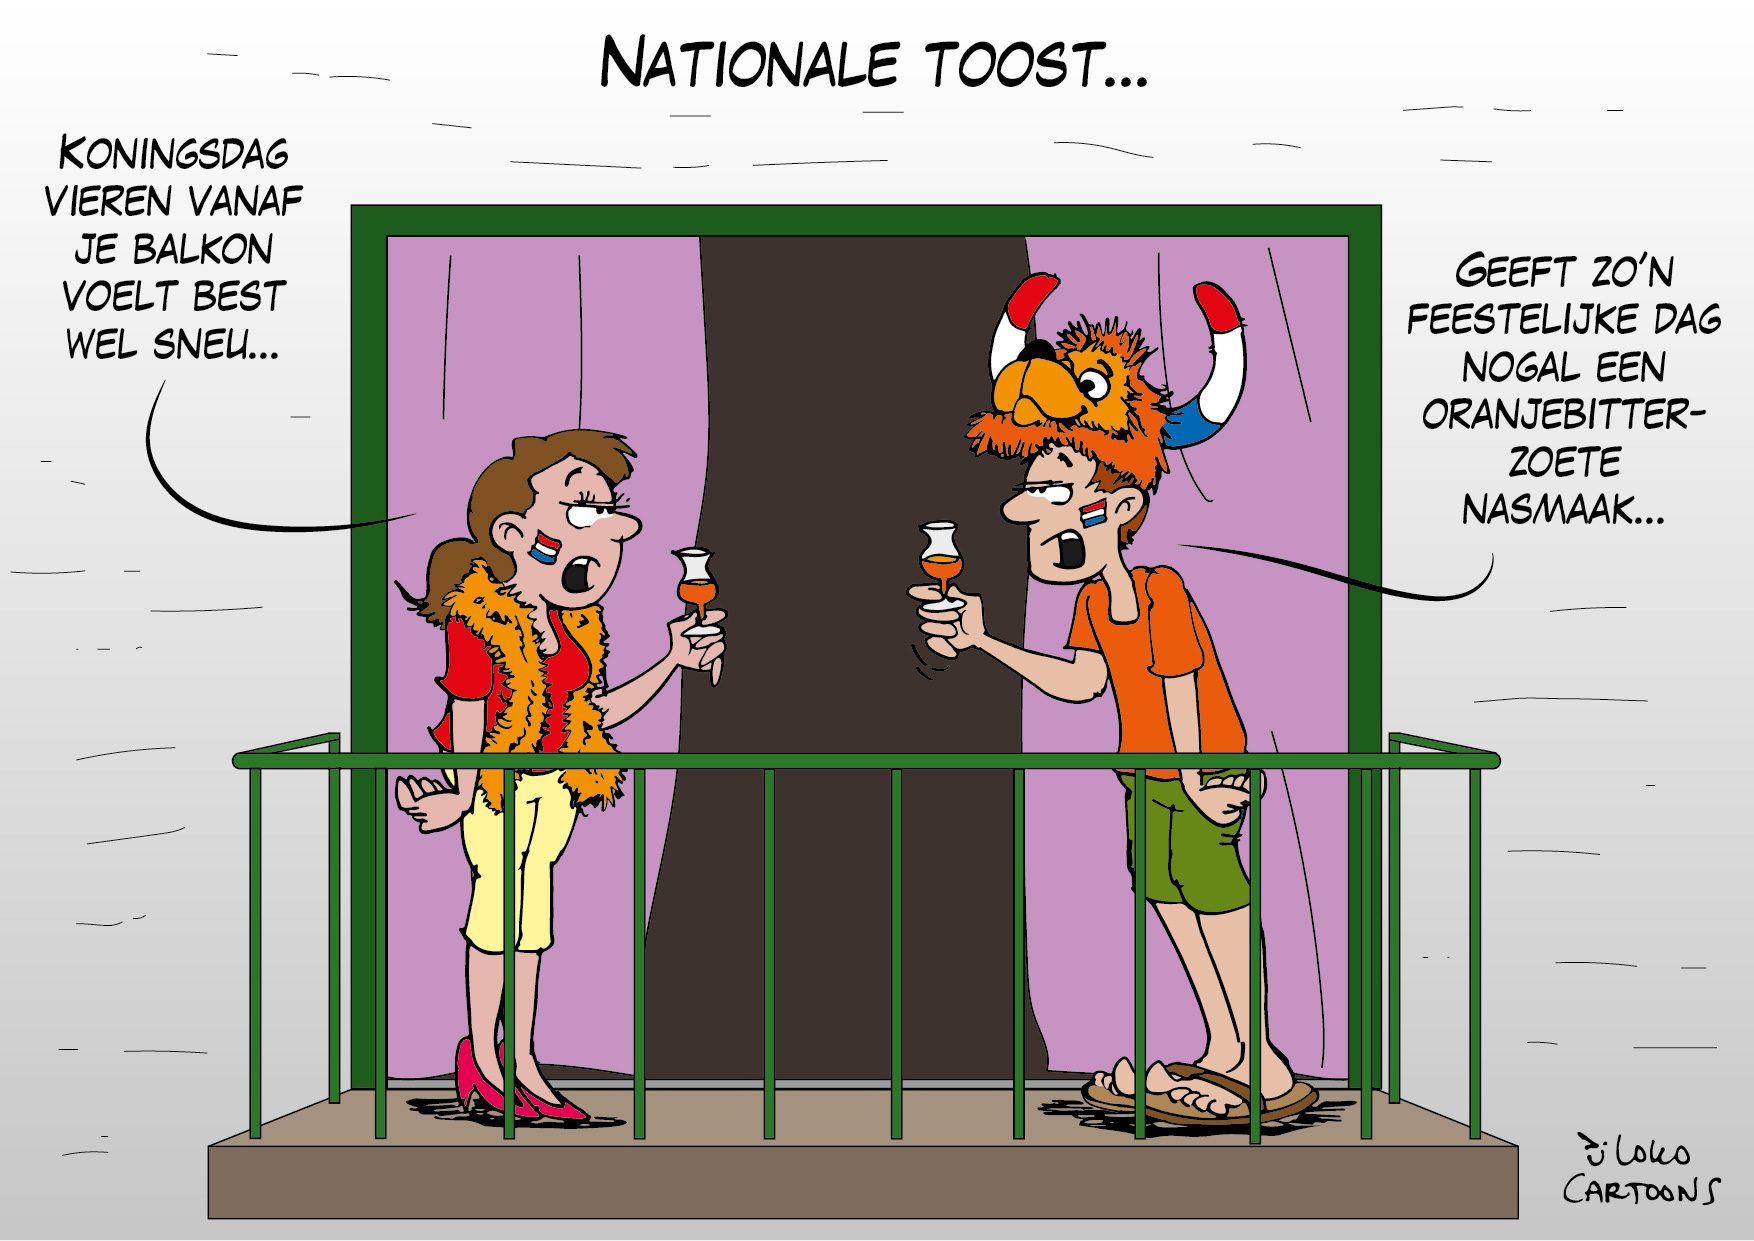 Nationale toost…